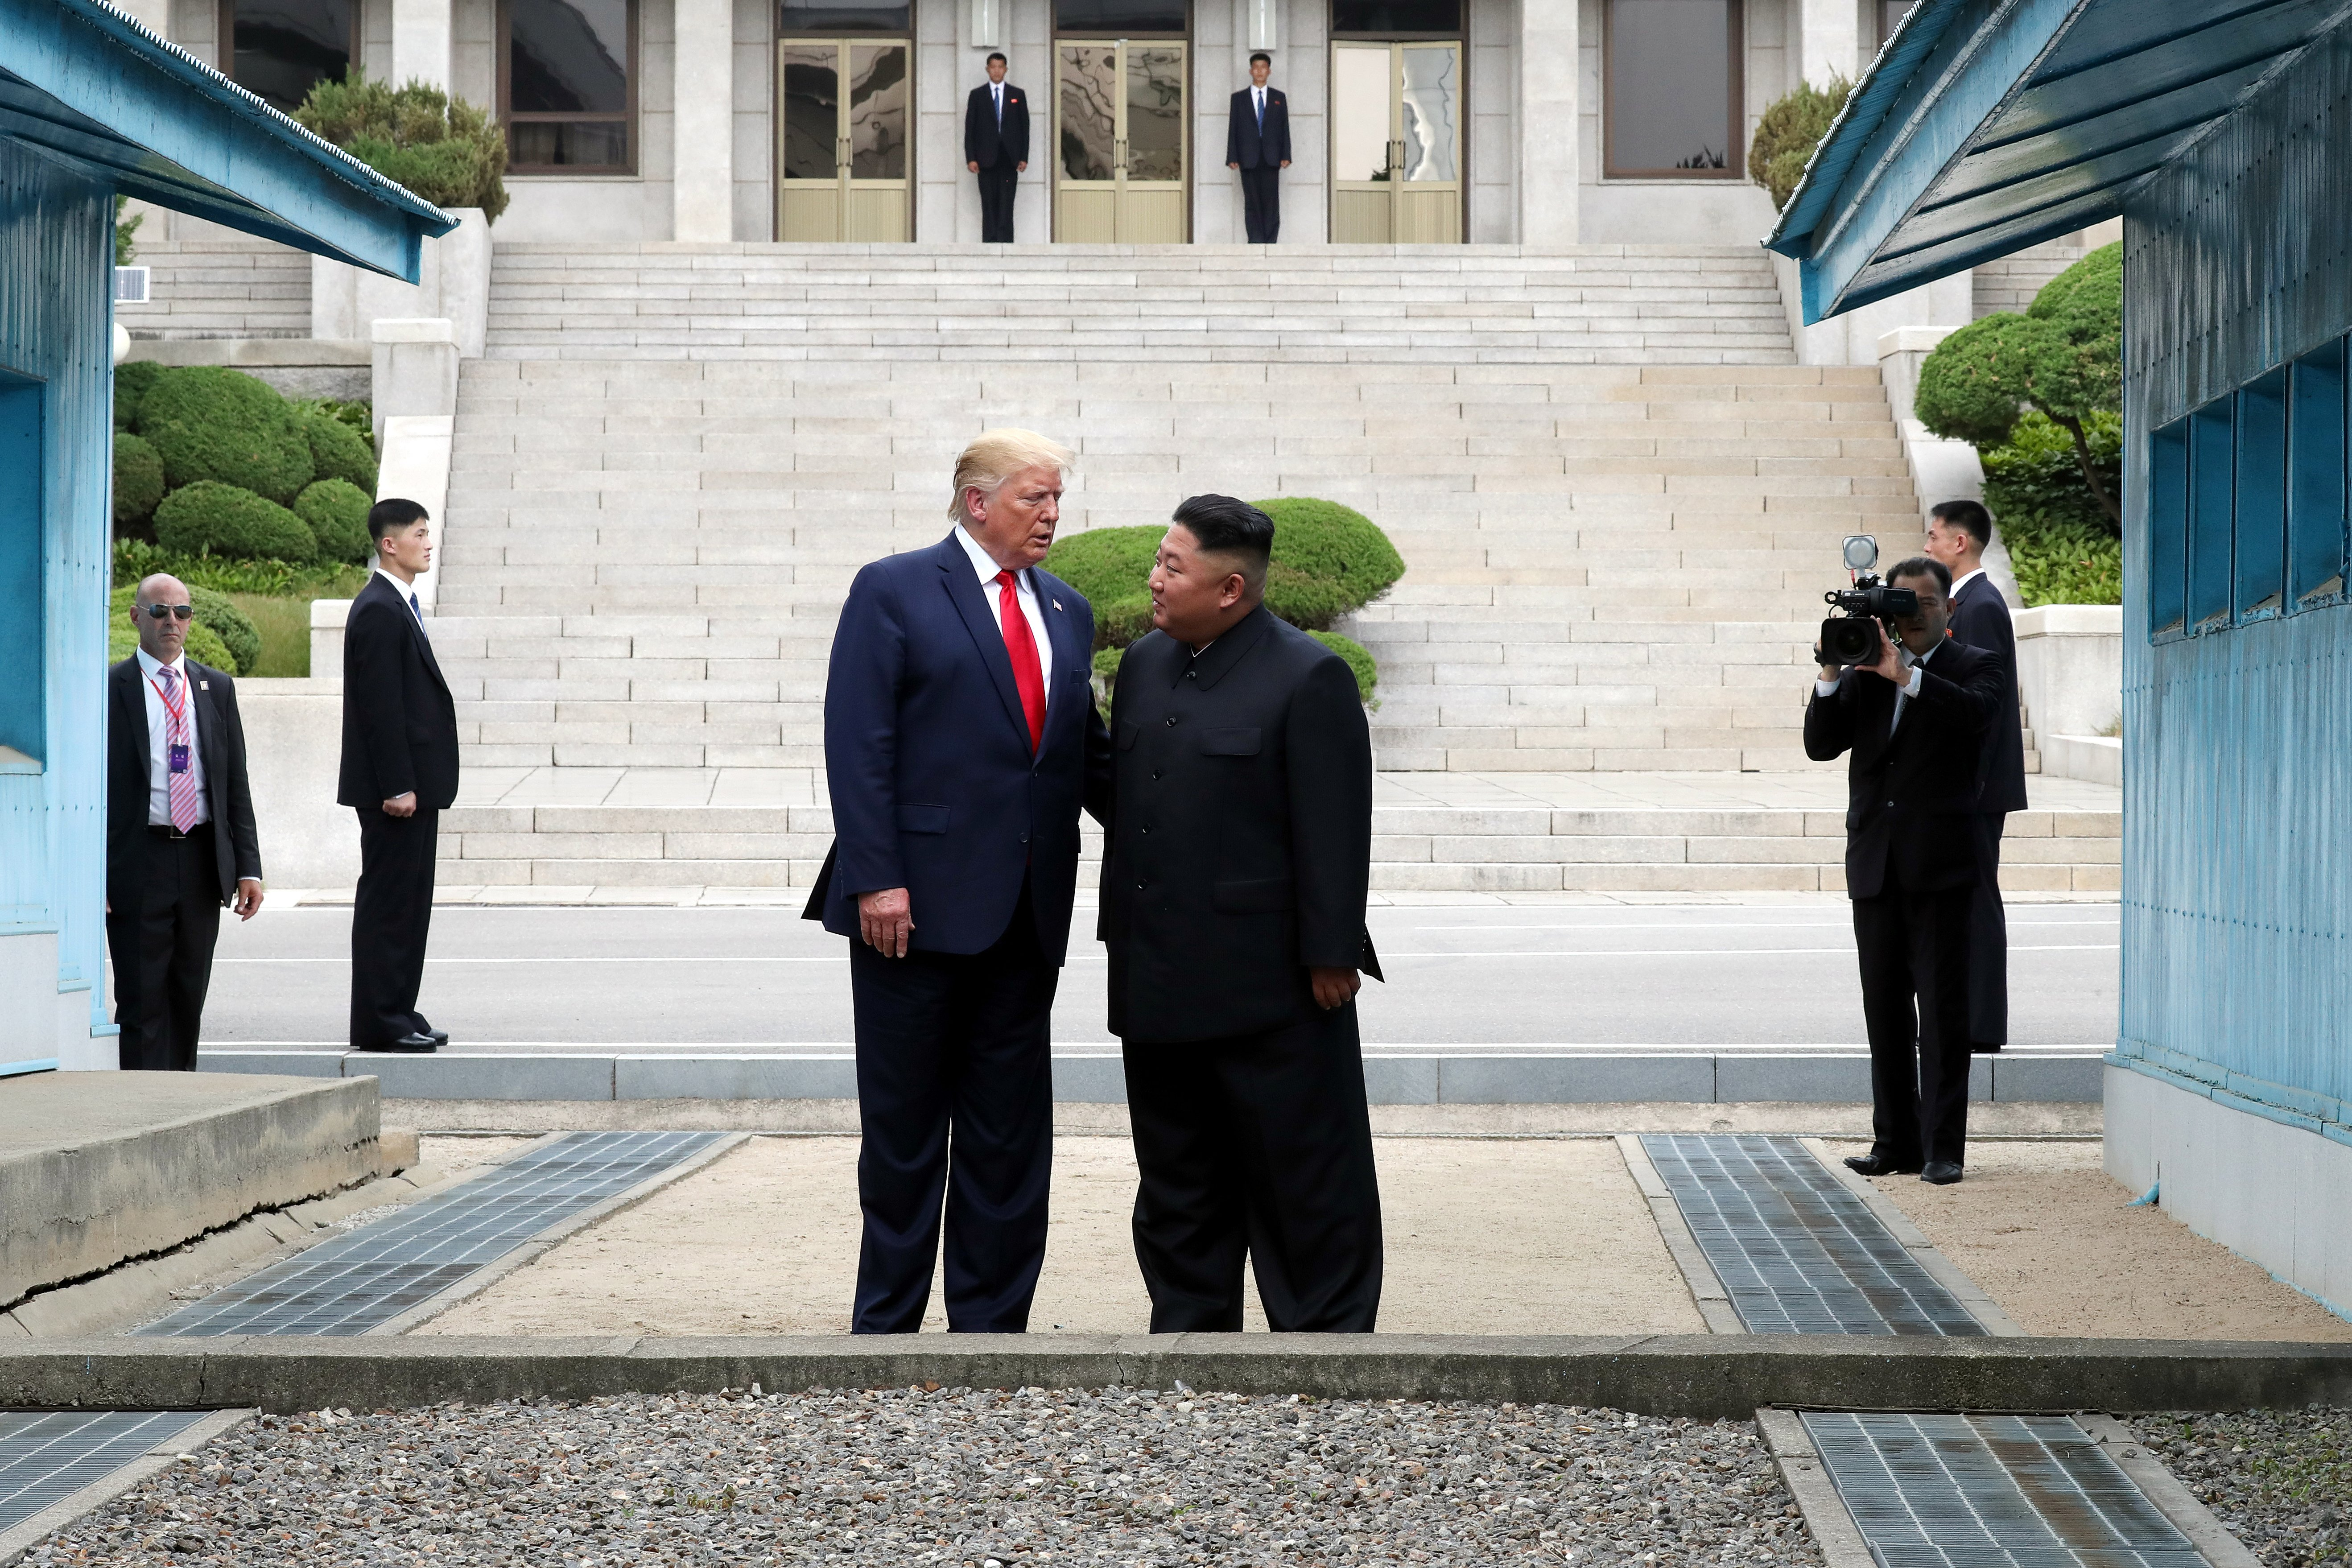 """A handout photo provided by Dong-A Ilbo of North Korean leader Kim Jong Un and U.S. President Donald Trump inside the demilitarized zone (DMZ) separating the South and North Korea on June 30, 2019 in Panmunjom, South Korea. U.S. President Donald Trump and North Korean leader Kim Jong-un briefly met at the Korean demilitarized zone (DMZ) on Sunday, with an intention to revitalize stalled nuclear talks and demonstrate the friendship between both countries. The encounter was the third time Trump and Kim have gotten together in person as both leaders have said they are committed to the """"complete denuclearization"""" of the Korean peninsula. (Photo by Handout/Dong-A Ilbo via Getty Images)"""